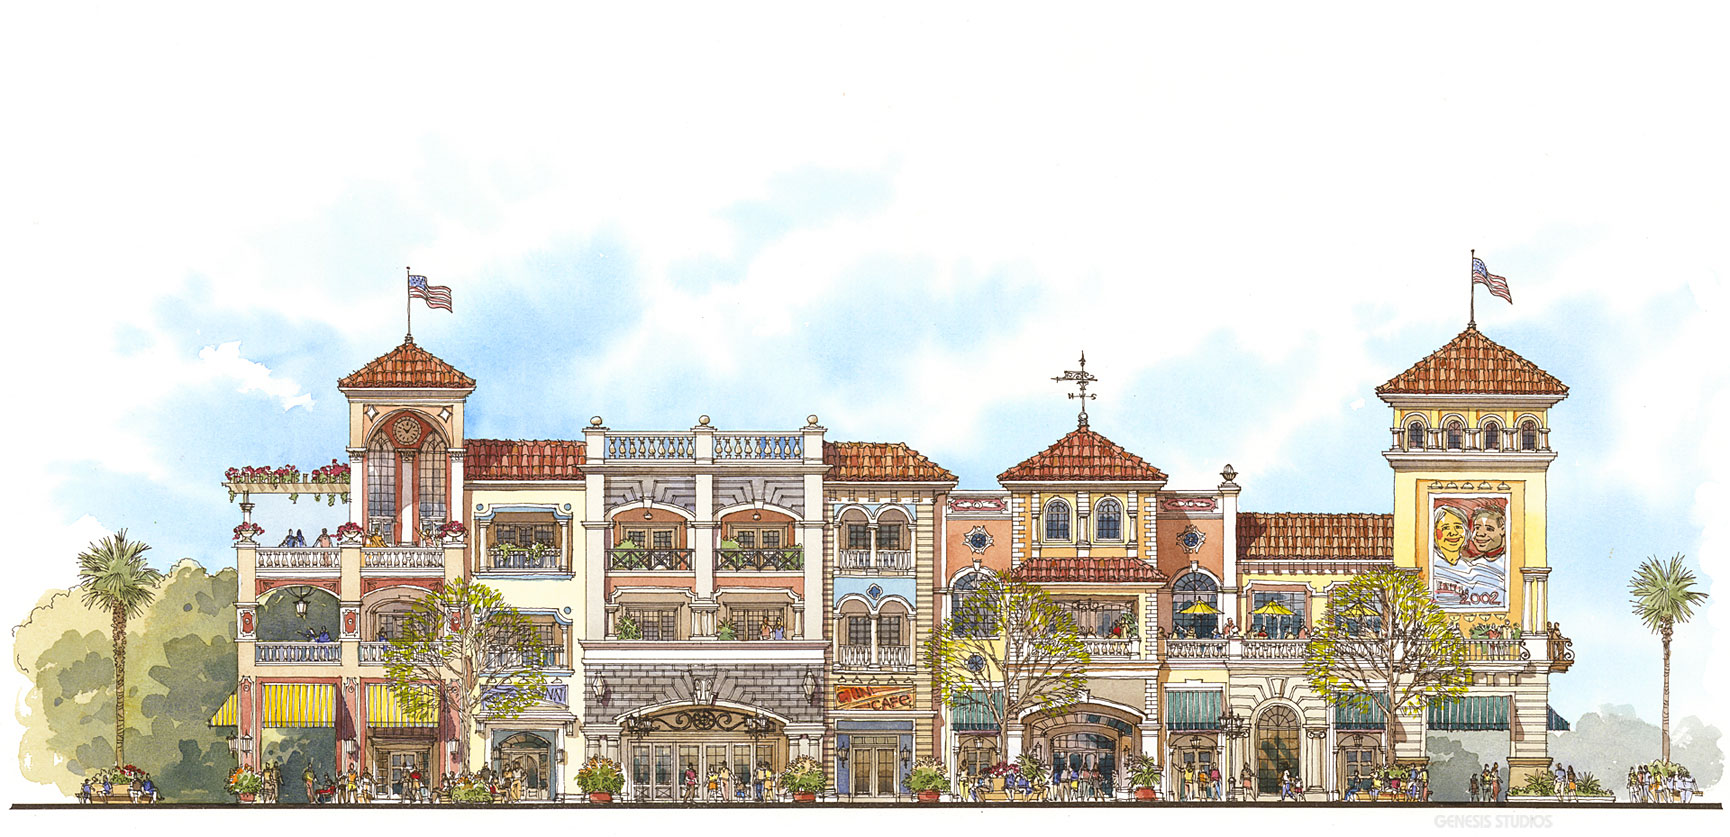 Watercolor Architectural Drawing of an Elevation for Veranda Partners